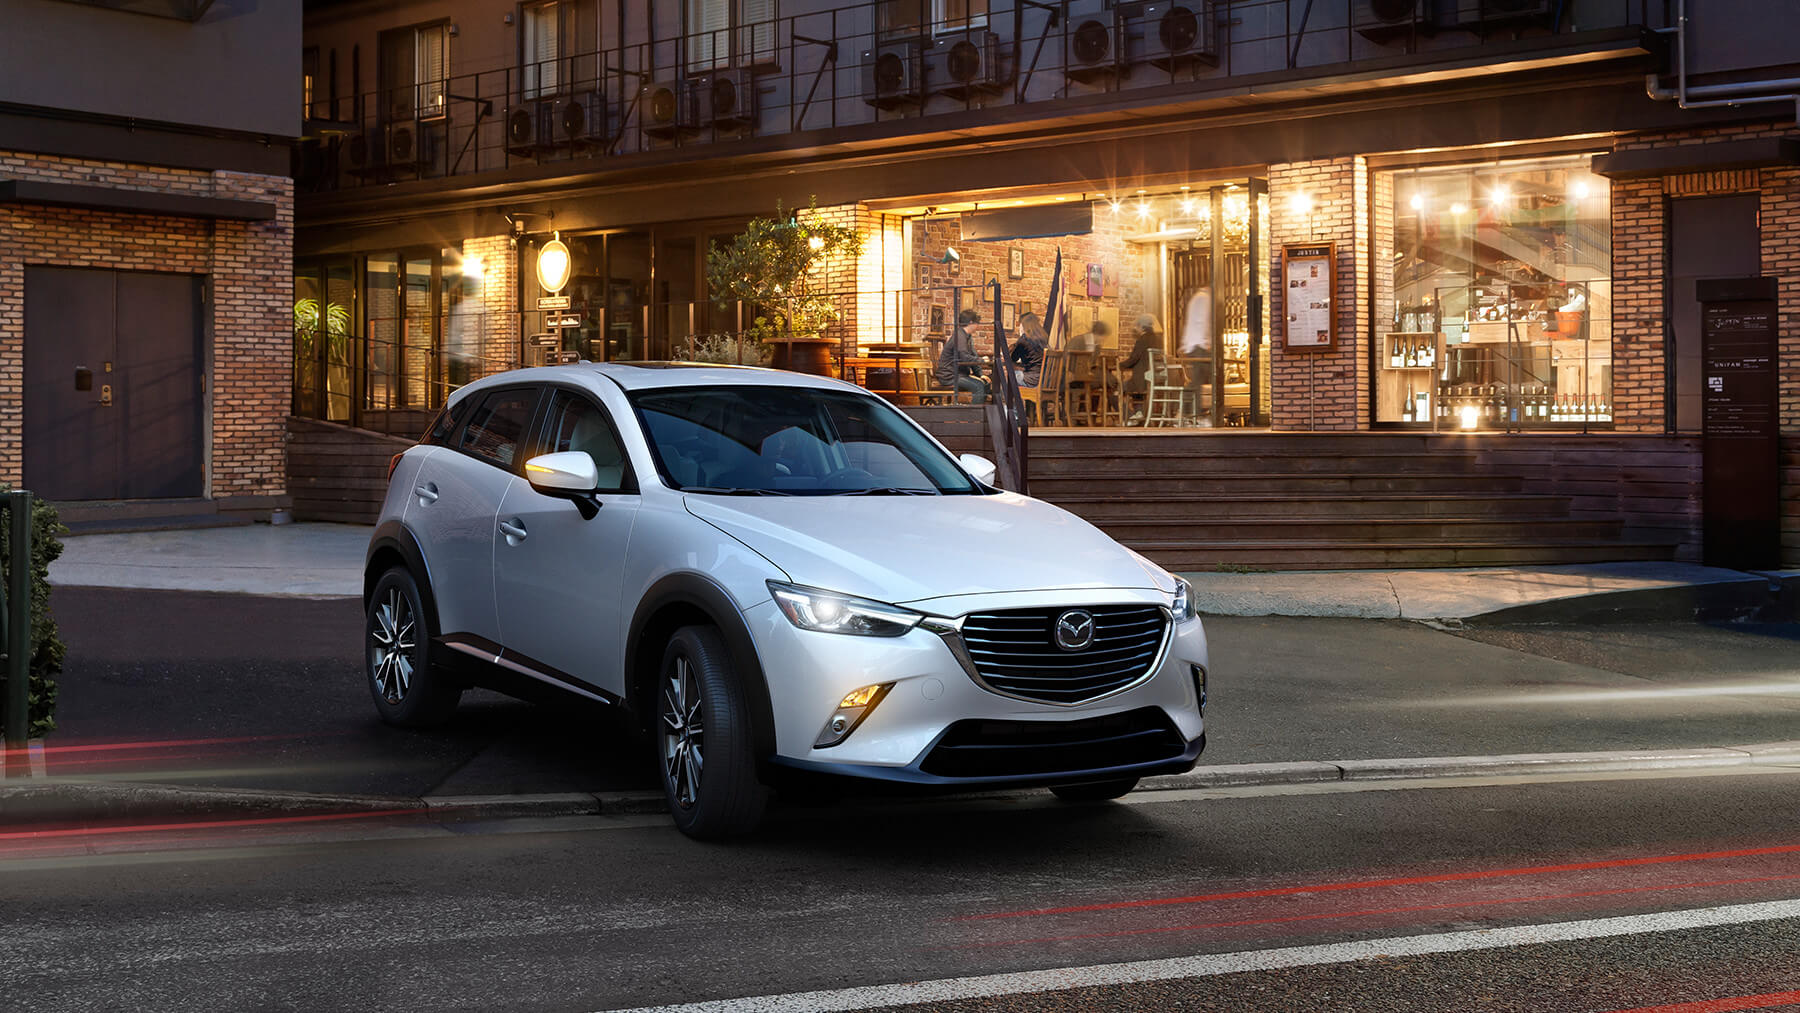 2017 mazda cx-3 overview | the news wheel